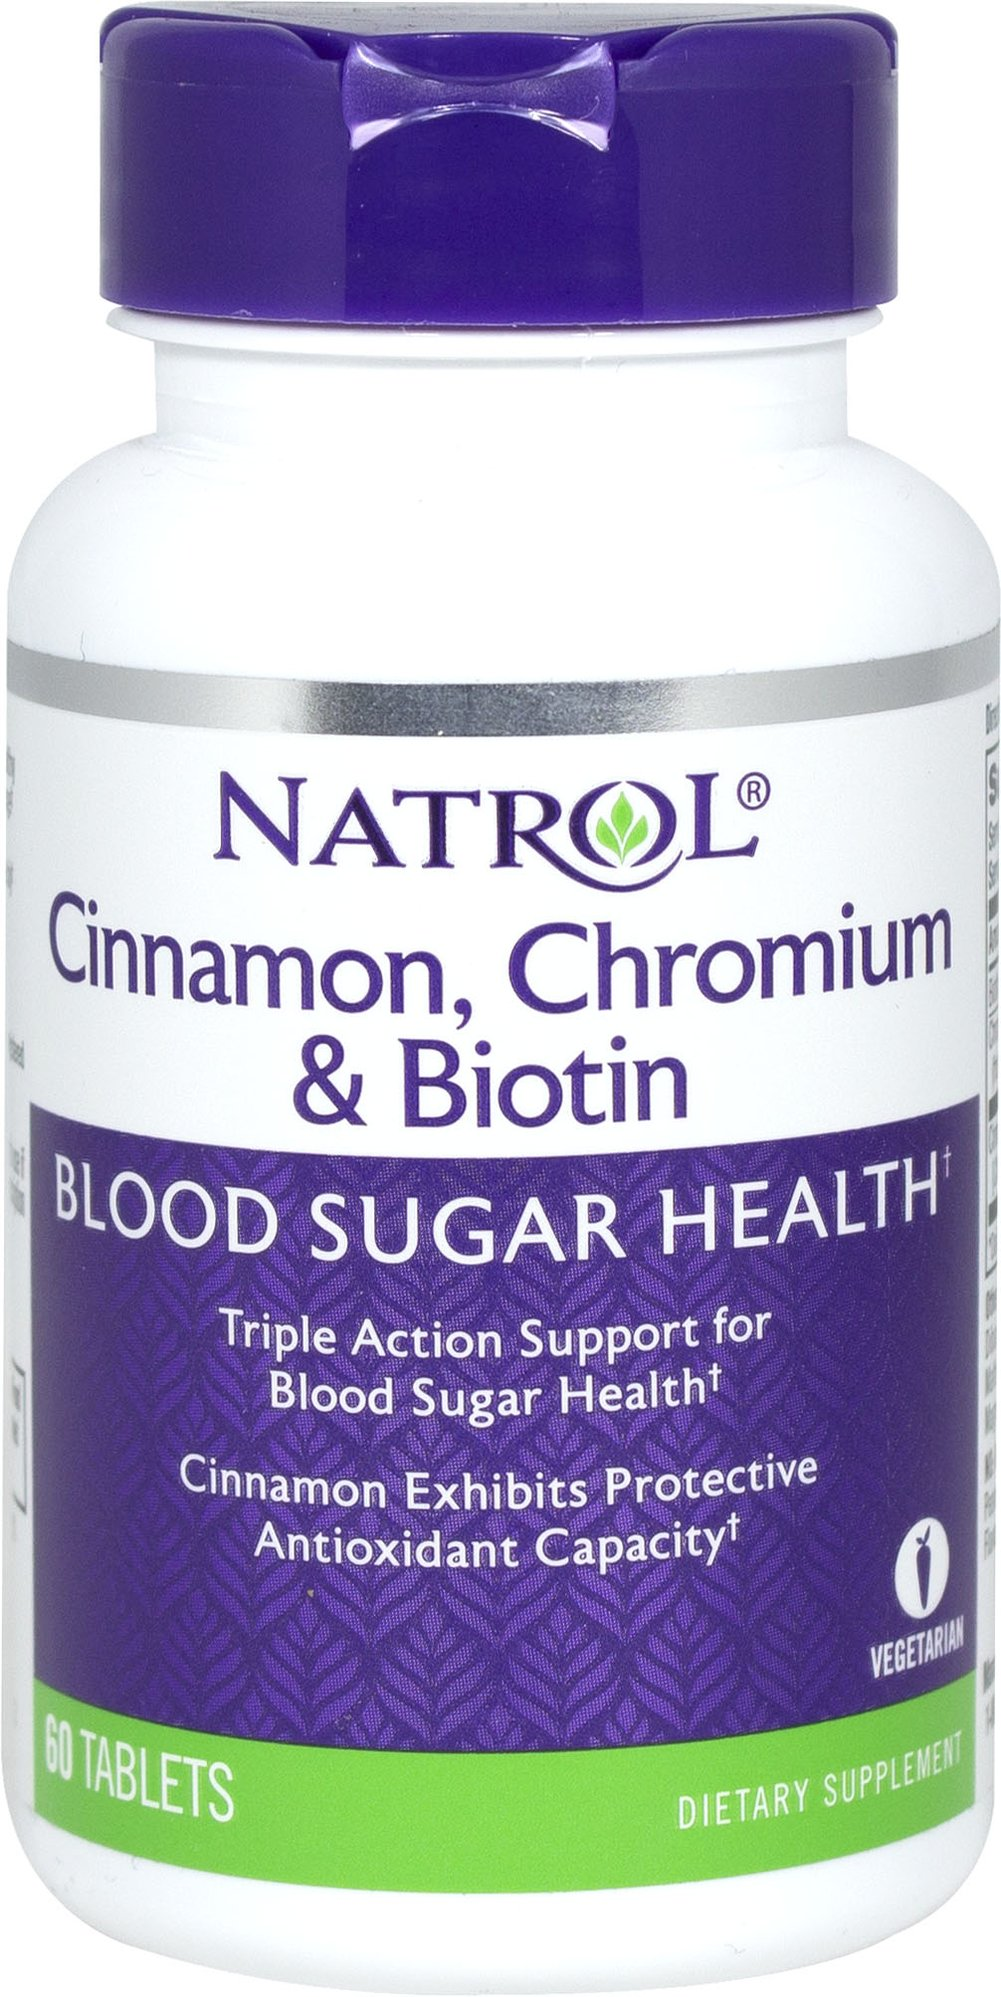 Super Cinnamon Complex with Chromium & Biotin <p><strong>From the Manufacturer's Label:</strong></p><p>Natrol Cinnamon Biotin Chromium provides a powerful, triple action formula of Cinnamon, Biotin, and Chromium Picolinate to support sugar, protein, and fat metabolism and help maintain blood sugar levels already within the normal range.<strong></strong></p> 60 Tablets  $7.99